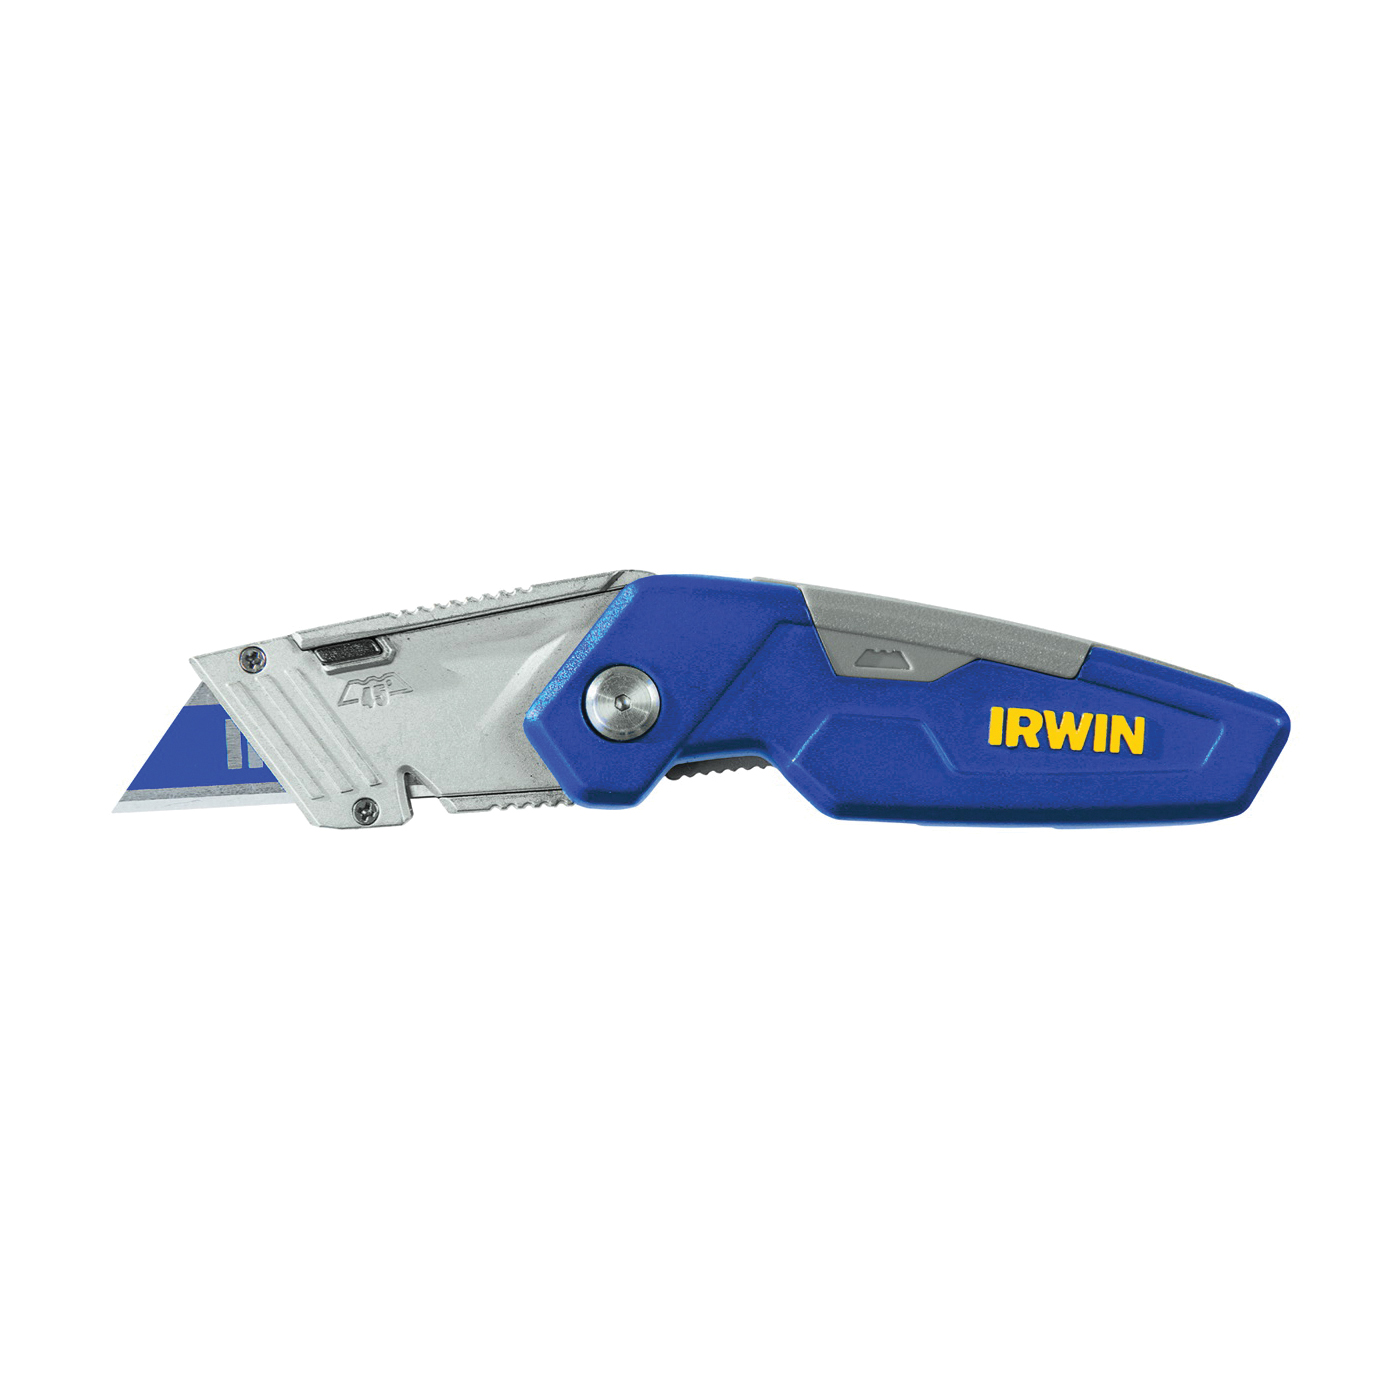 Picture of IRWIN 1858319 Utility Knife, 2-1/2 in L Blade, Bi-Metal Blade, Straight Handle, Blue Handle